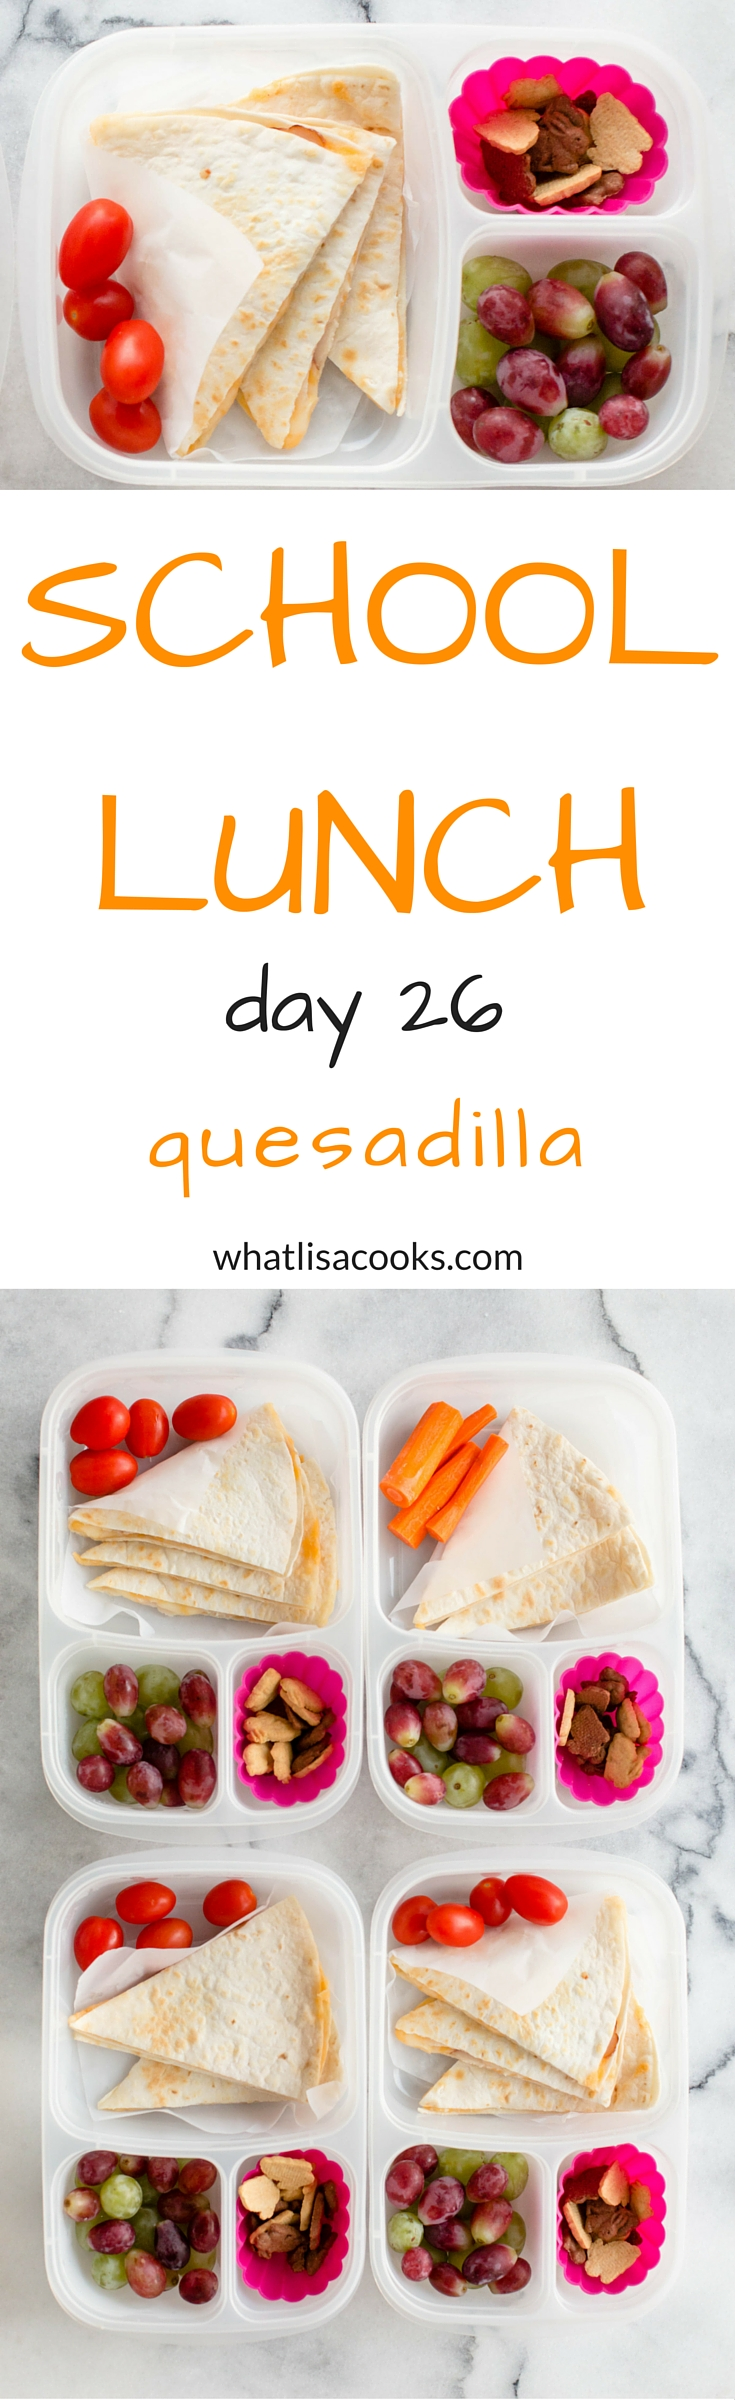 easy school lunch idea from whatlisacooks.com - quesadillas made the night before school.